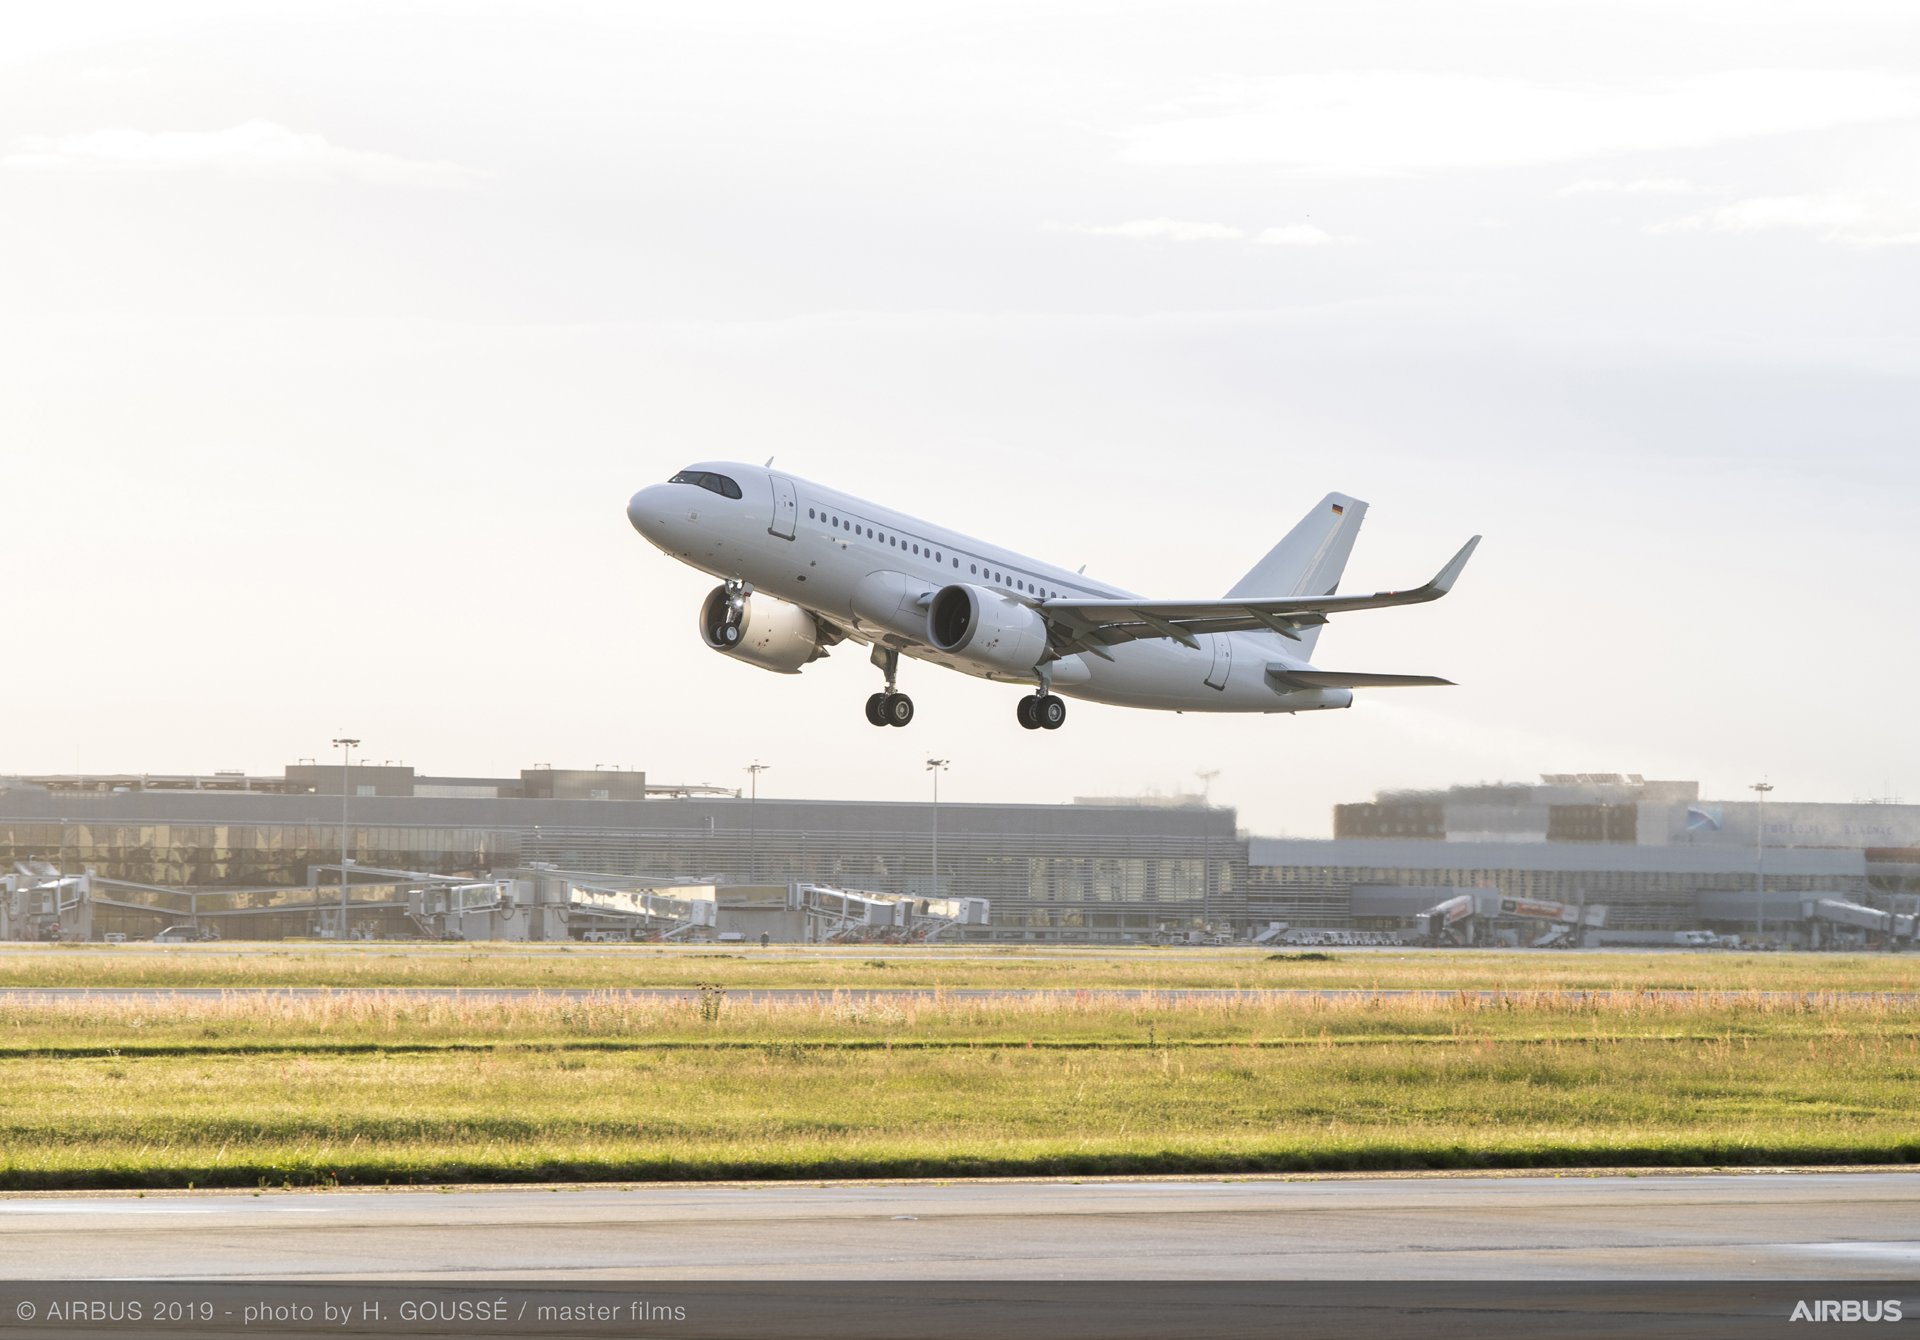 With its test flight performed 26 April, the first ACJ319neo set a new record for the longest A320 Family flight by an Airbus crew